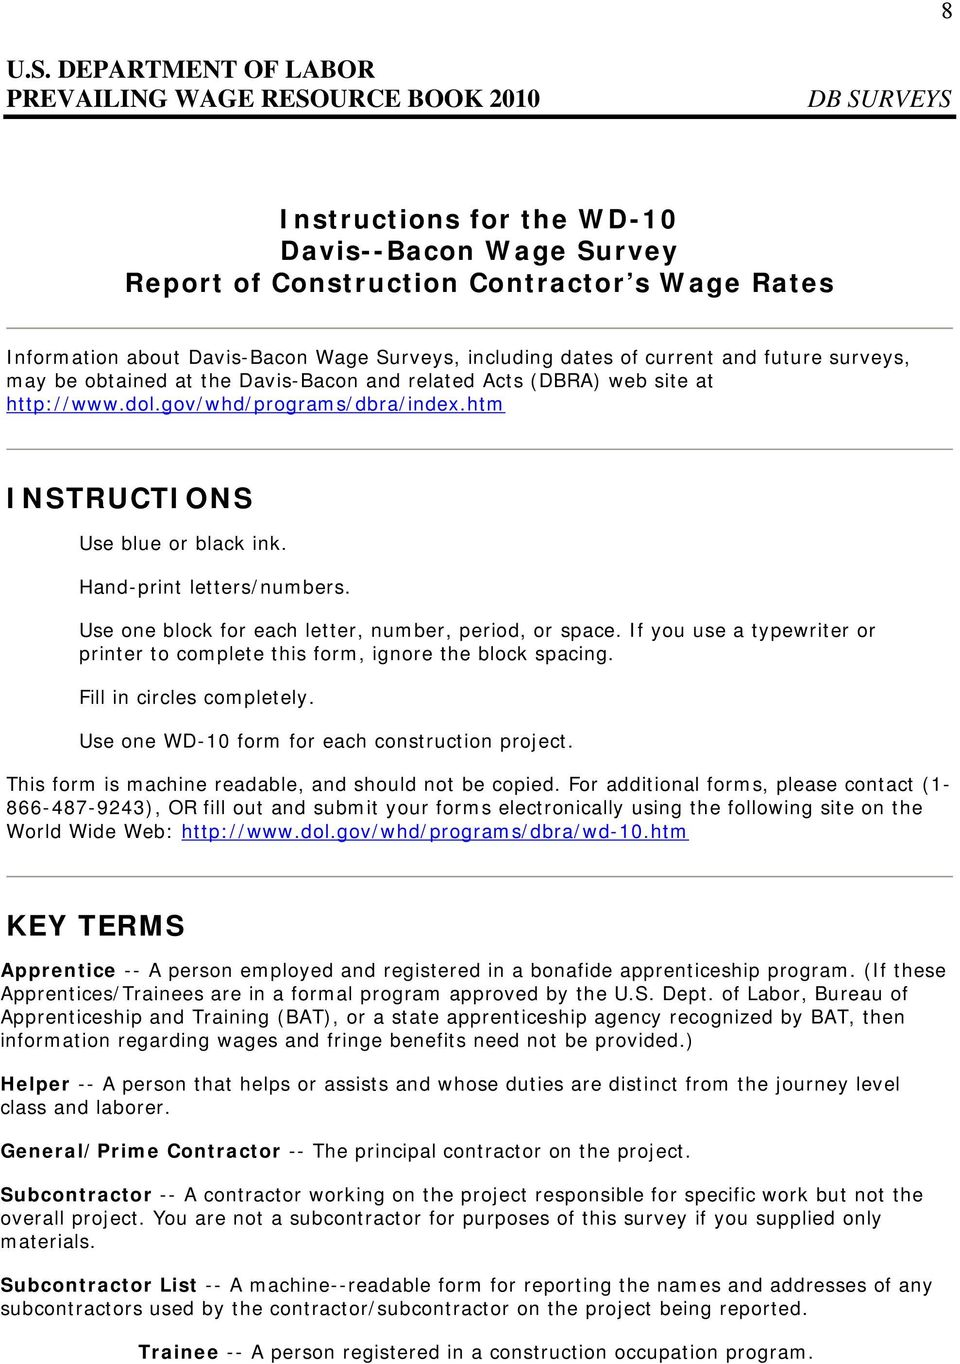 U S  DEPARTMENT OF LABOR PREVAILING WAGE RESOURCE BOOK 2010